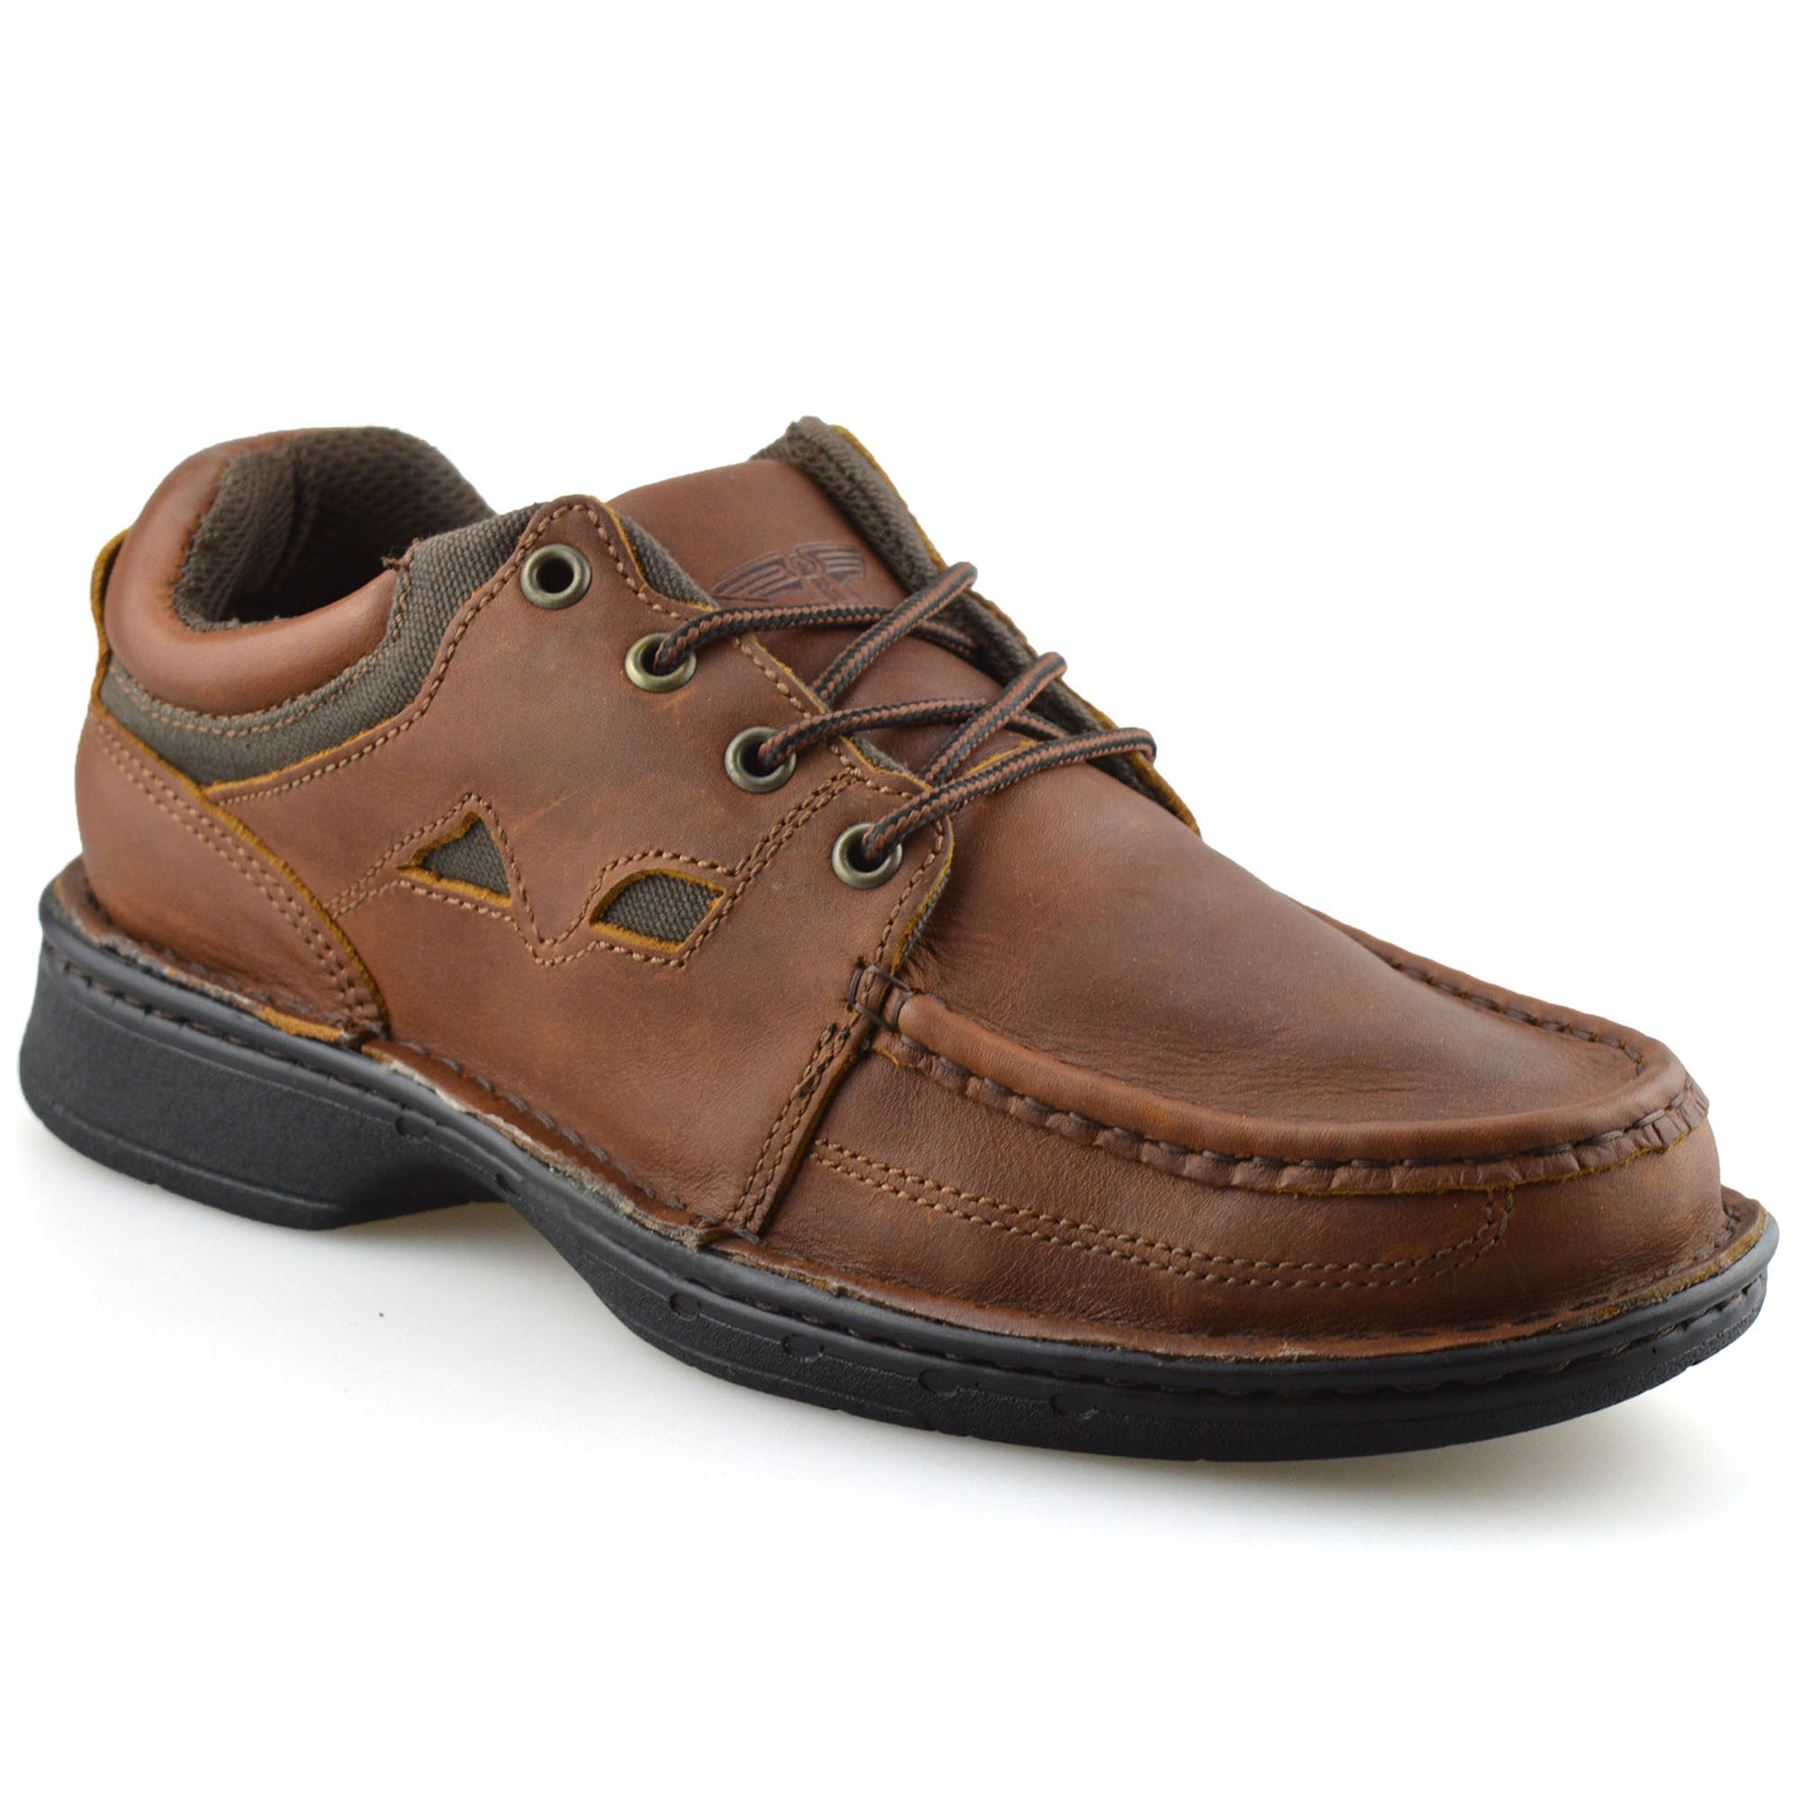 Mens-Leather-Casual-Smart-Lace-Up-Walking-Work-Moccasin-Driving-Boat-Shoes-Size thumbnail 8